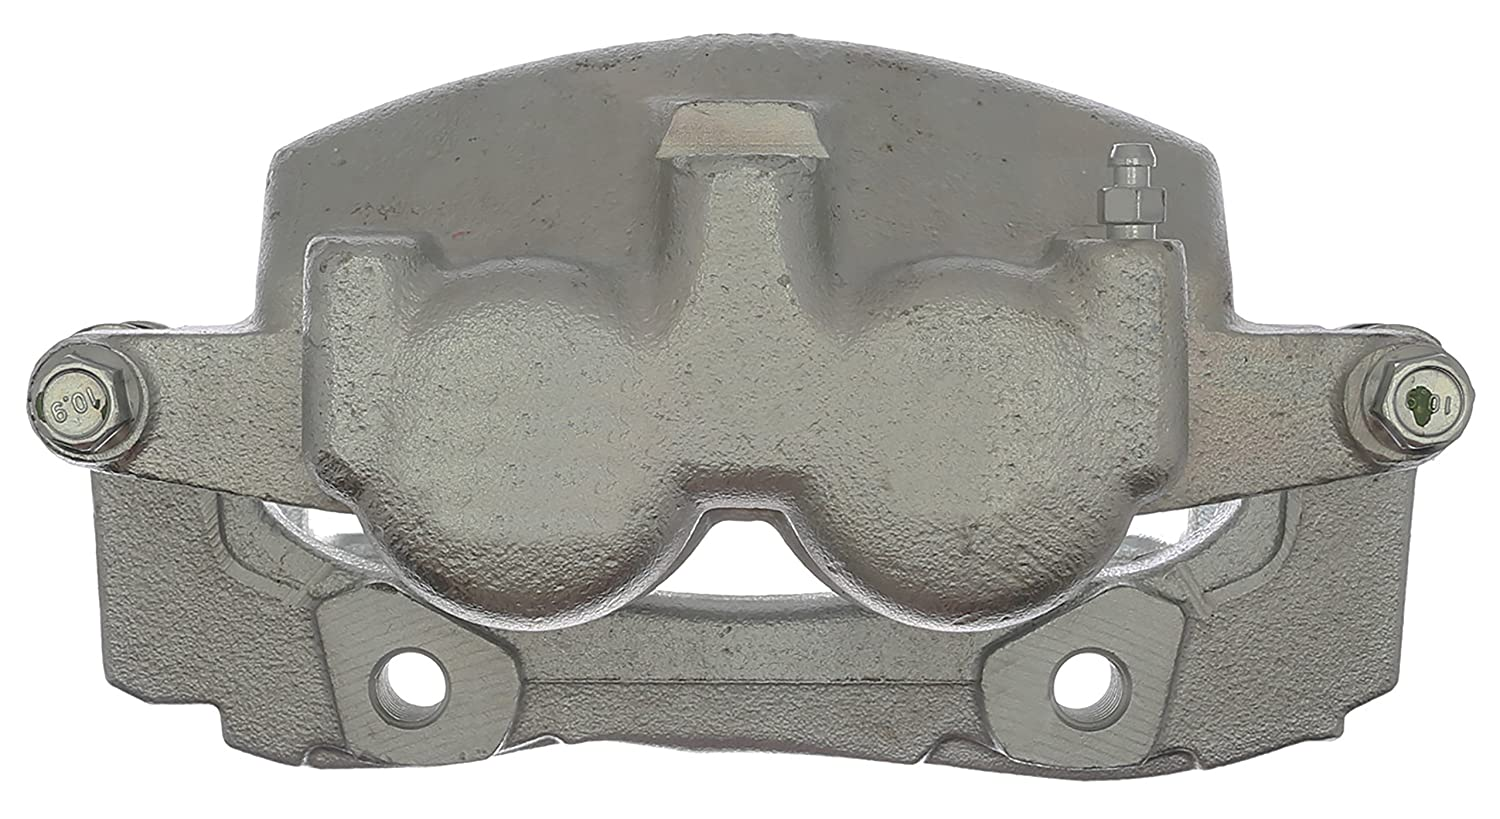 ACDelco 18FR2014C Professional Front Driver Side Disc Brake Caliper Assembly without Pads (Friction Ready Coated), Remanufactured